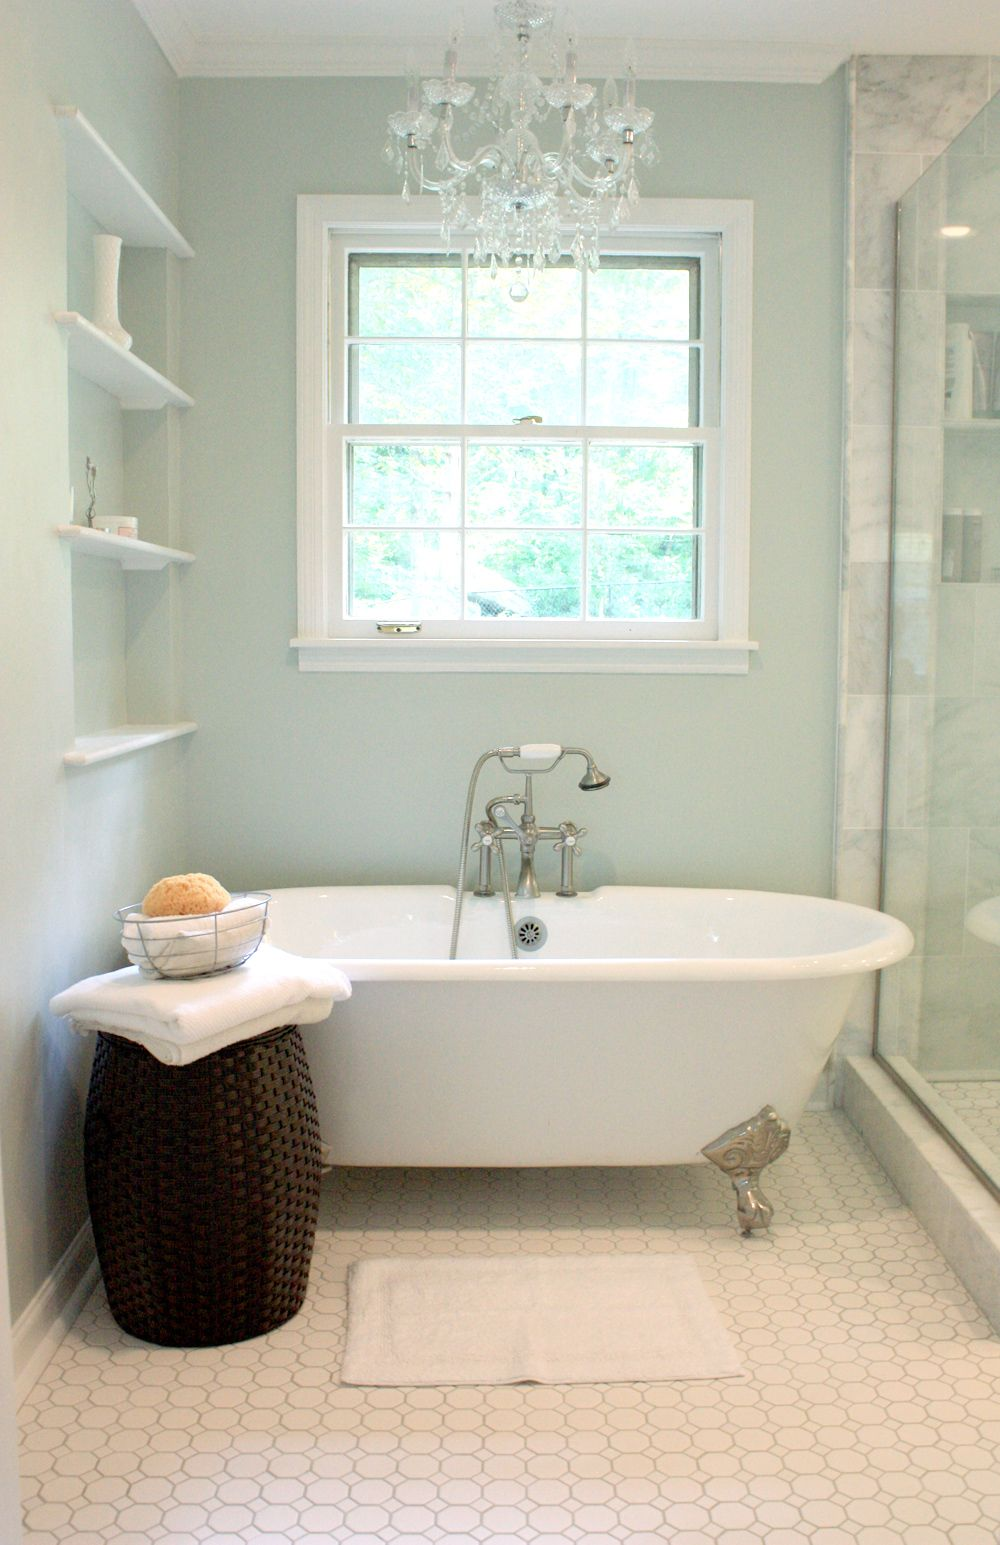 paint color sherwin williams sea salt is one of the most popular green blue gray paint colour good for a spa or beach theme bathroom or room - Bathroom Ideas Colours